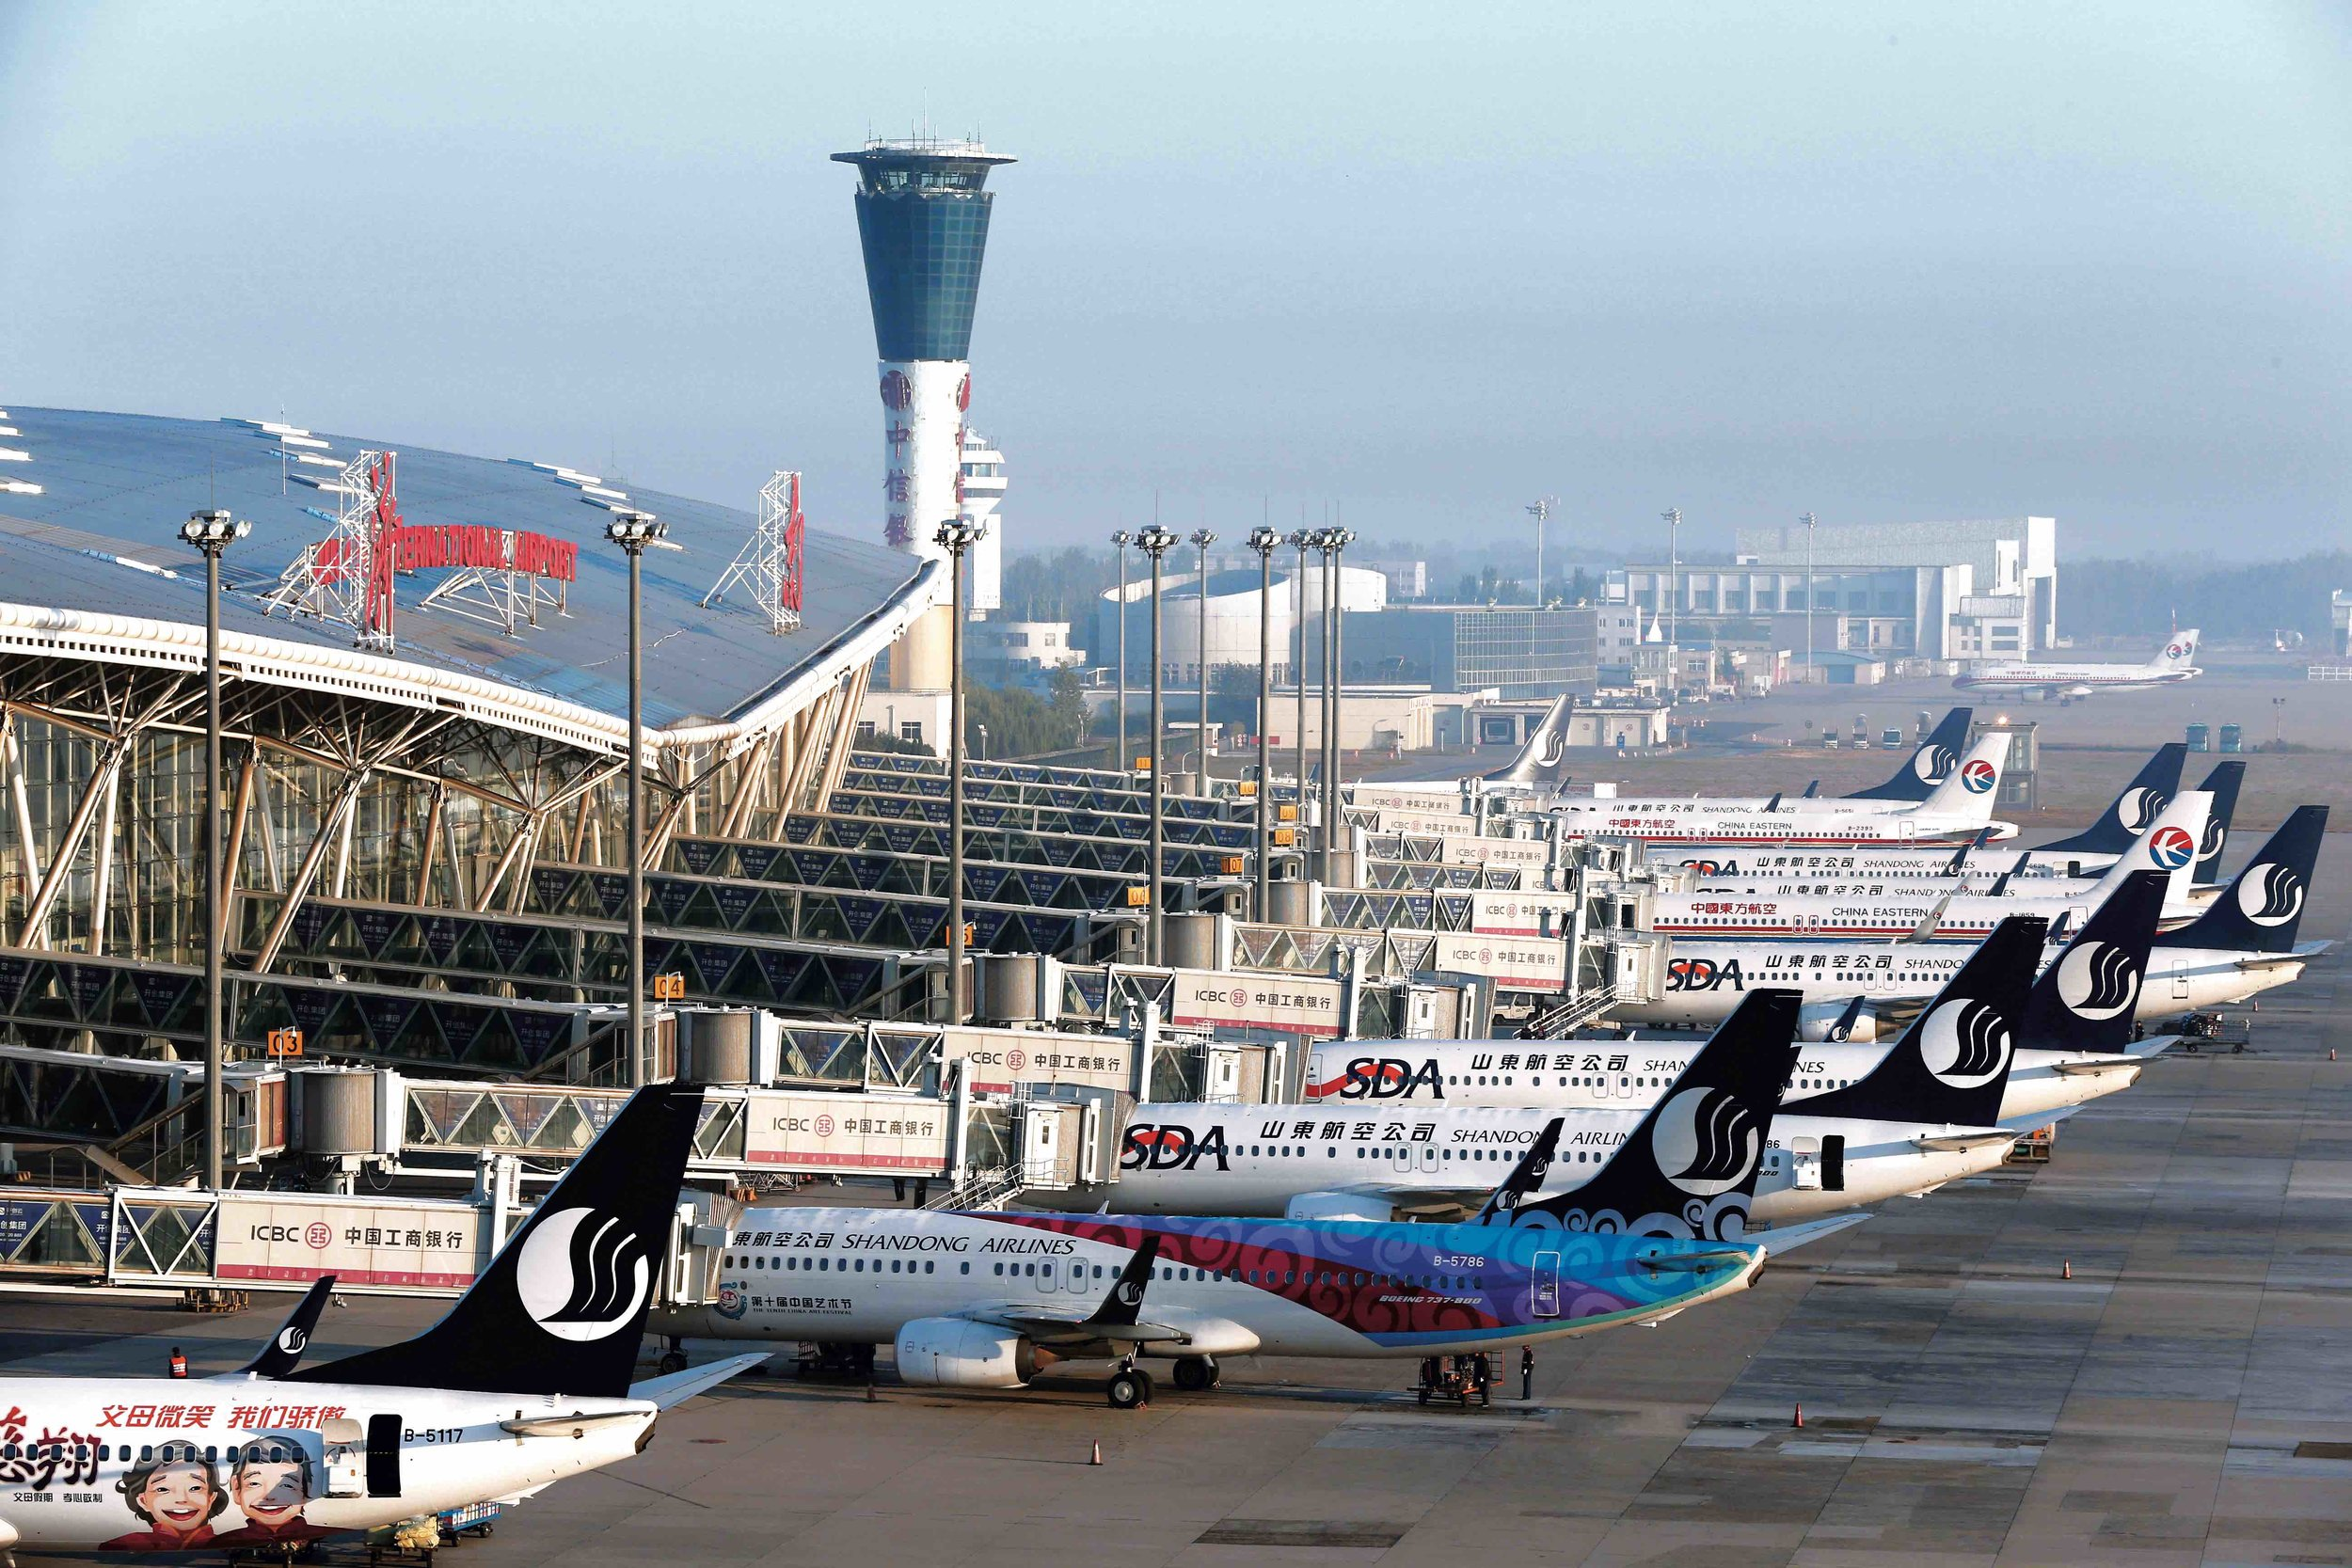 Which other industry is strong in Jinan? -